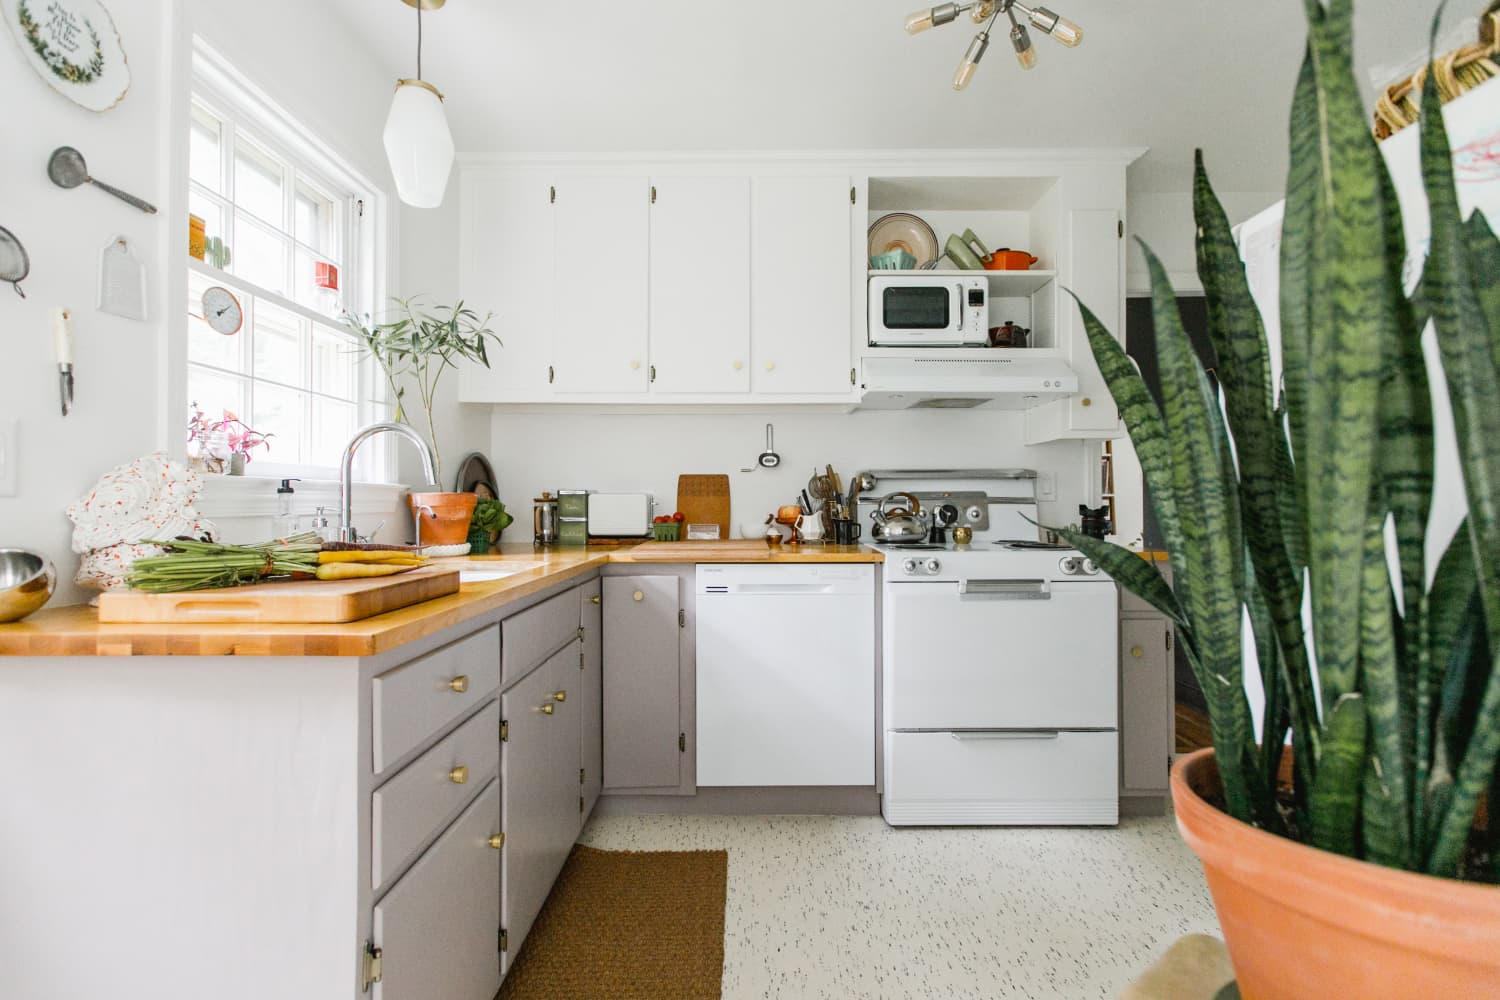 9 Kitchen Design Trends That Will Disappear in 2020